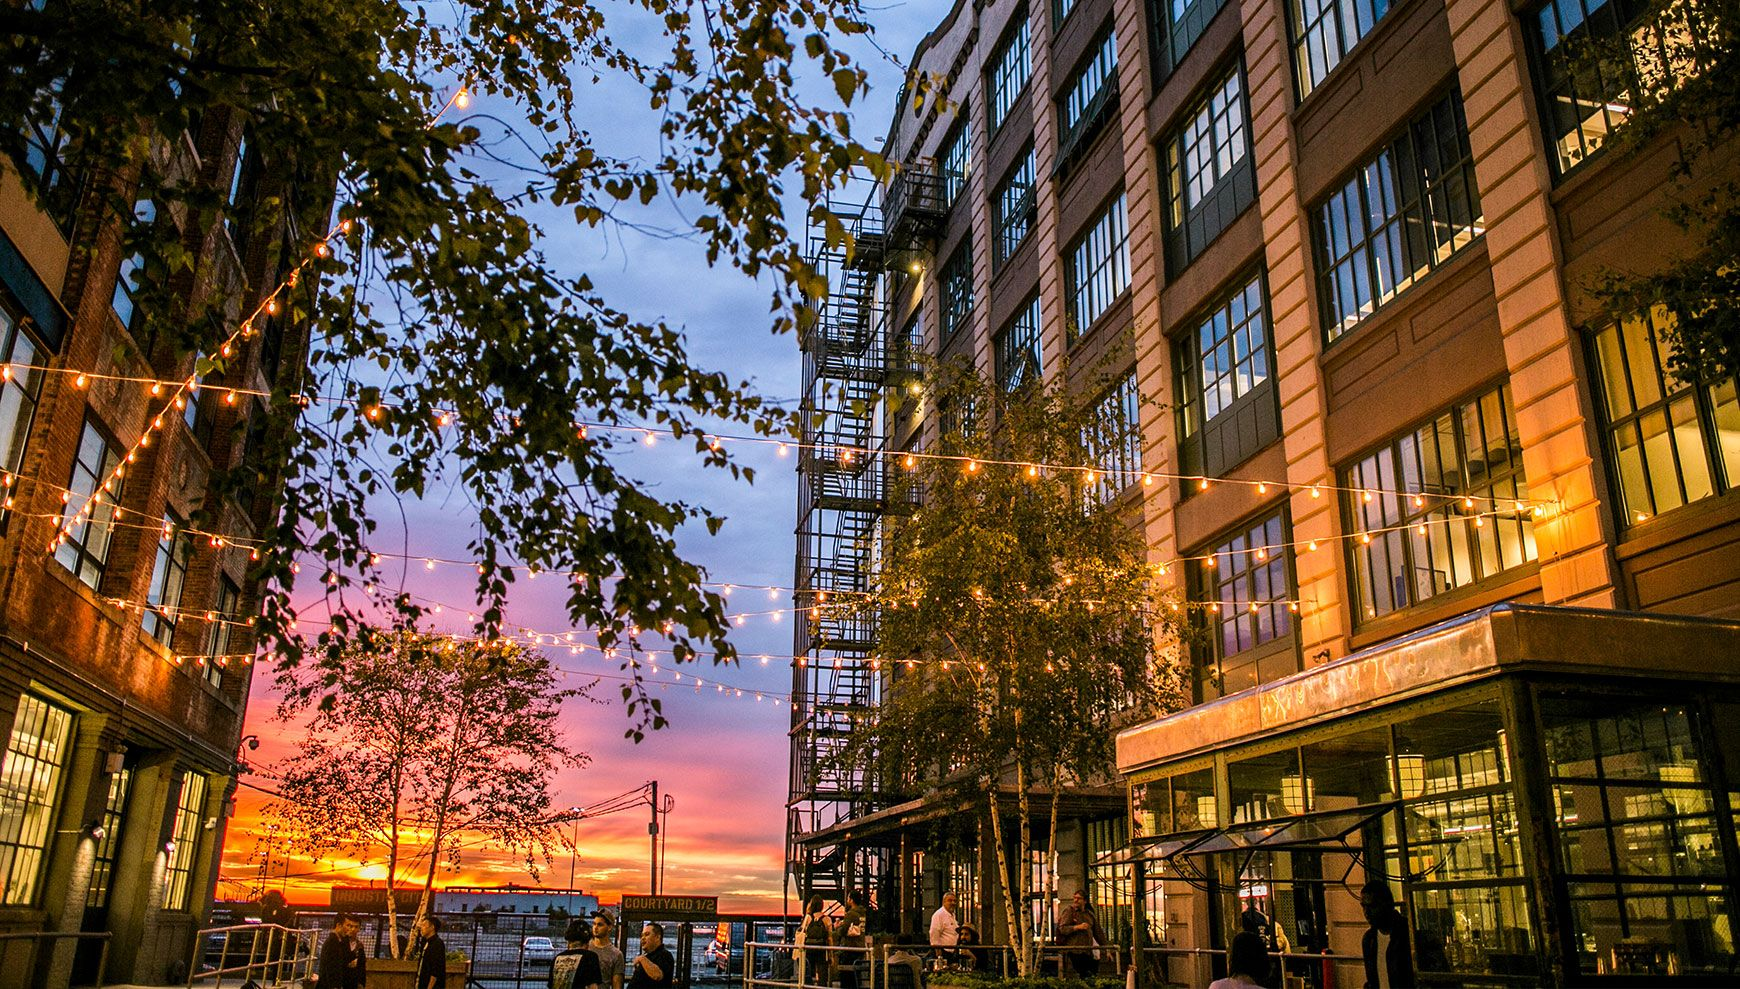 Industry City Brooklyn Sunset Parl With Images City Photo Acre